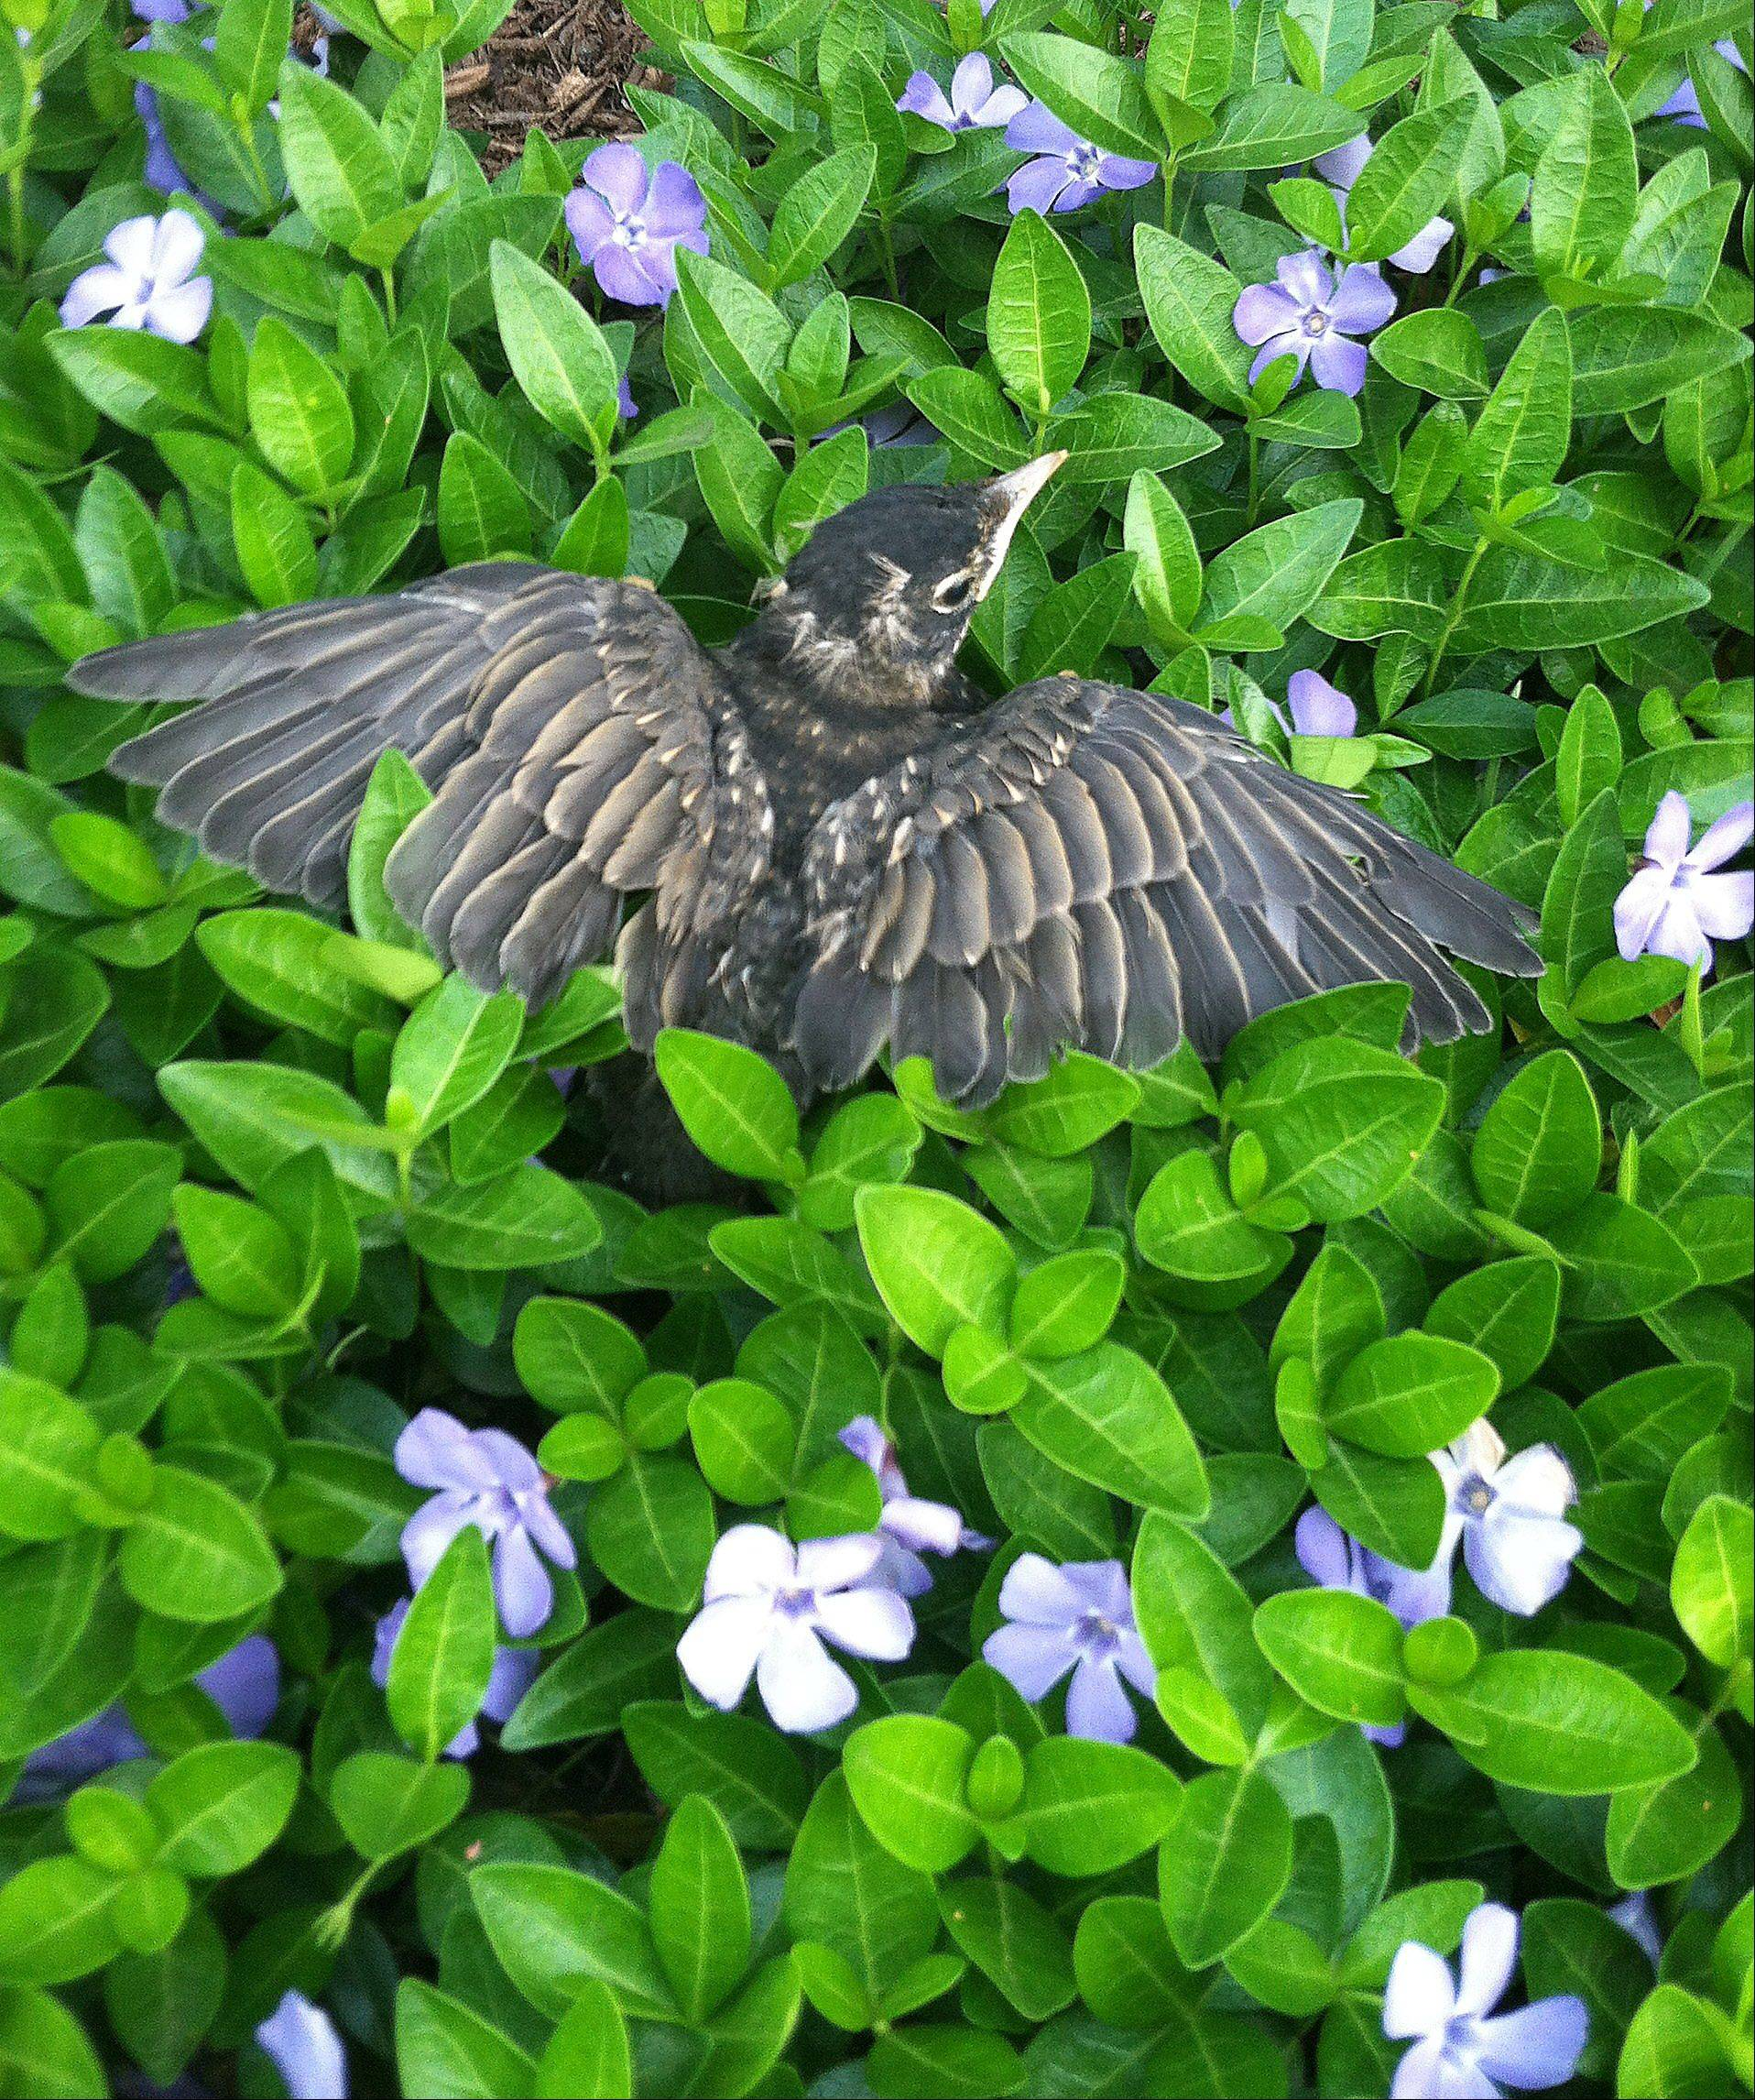 This photo was taken last week at our Geneva home. This baby bird was scampering around our front yard but could not yet fly. It ended up in our ground cover which made a great backdrop and reminded me of the renewal that Spring brings.